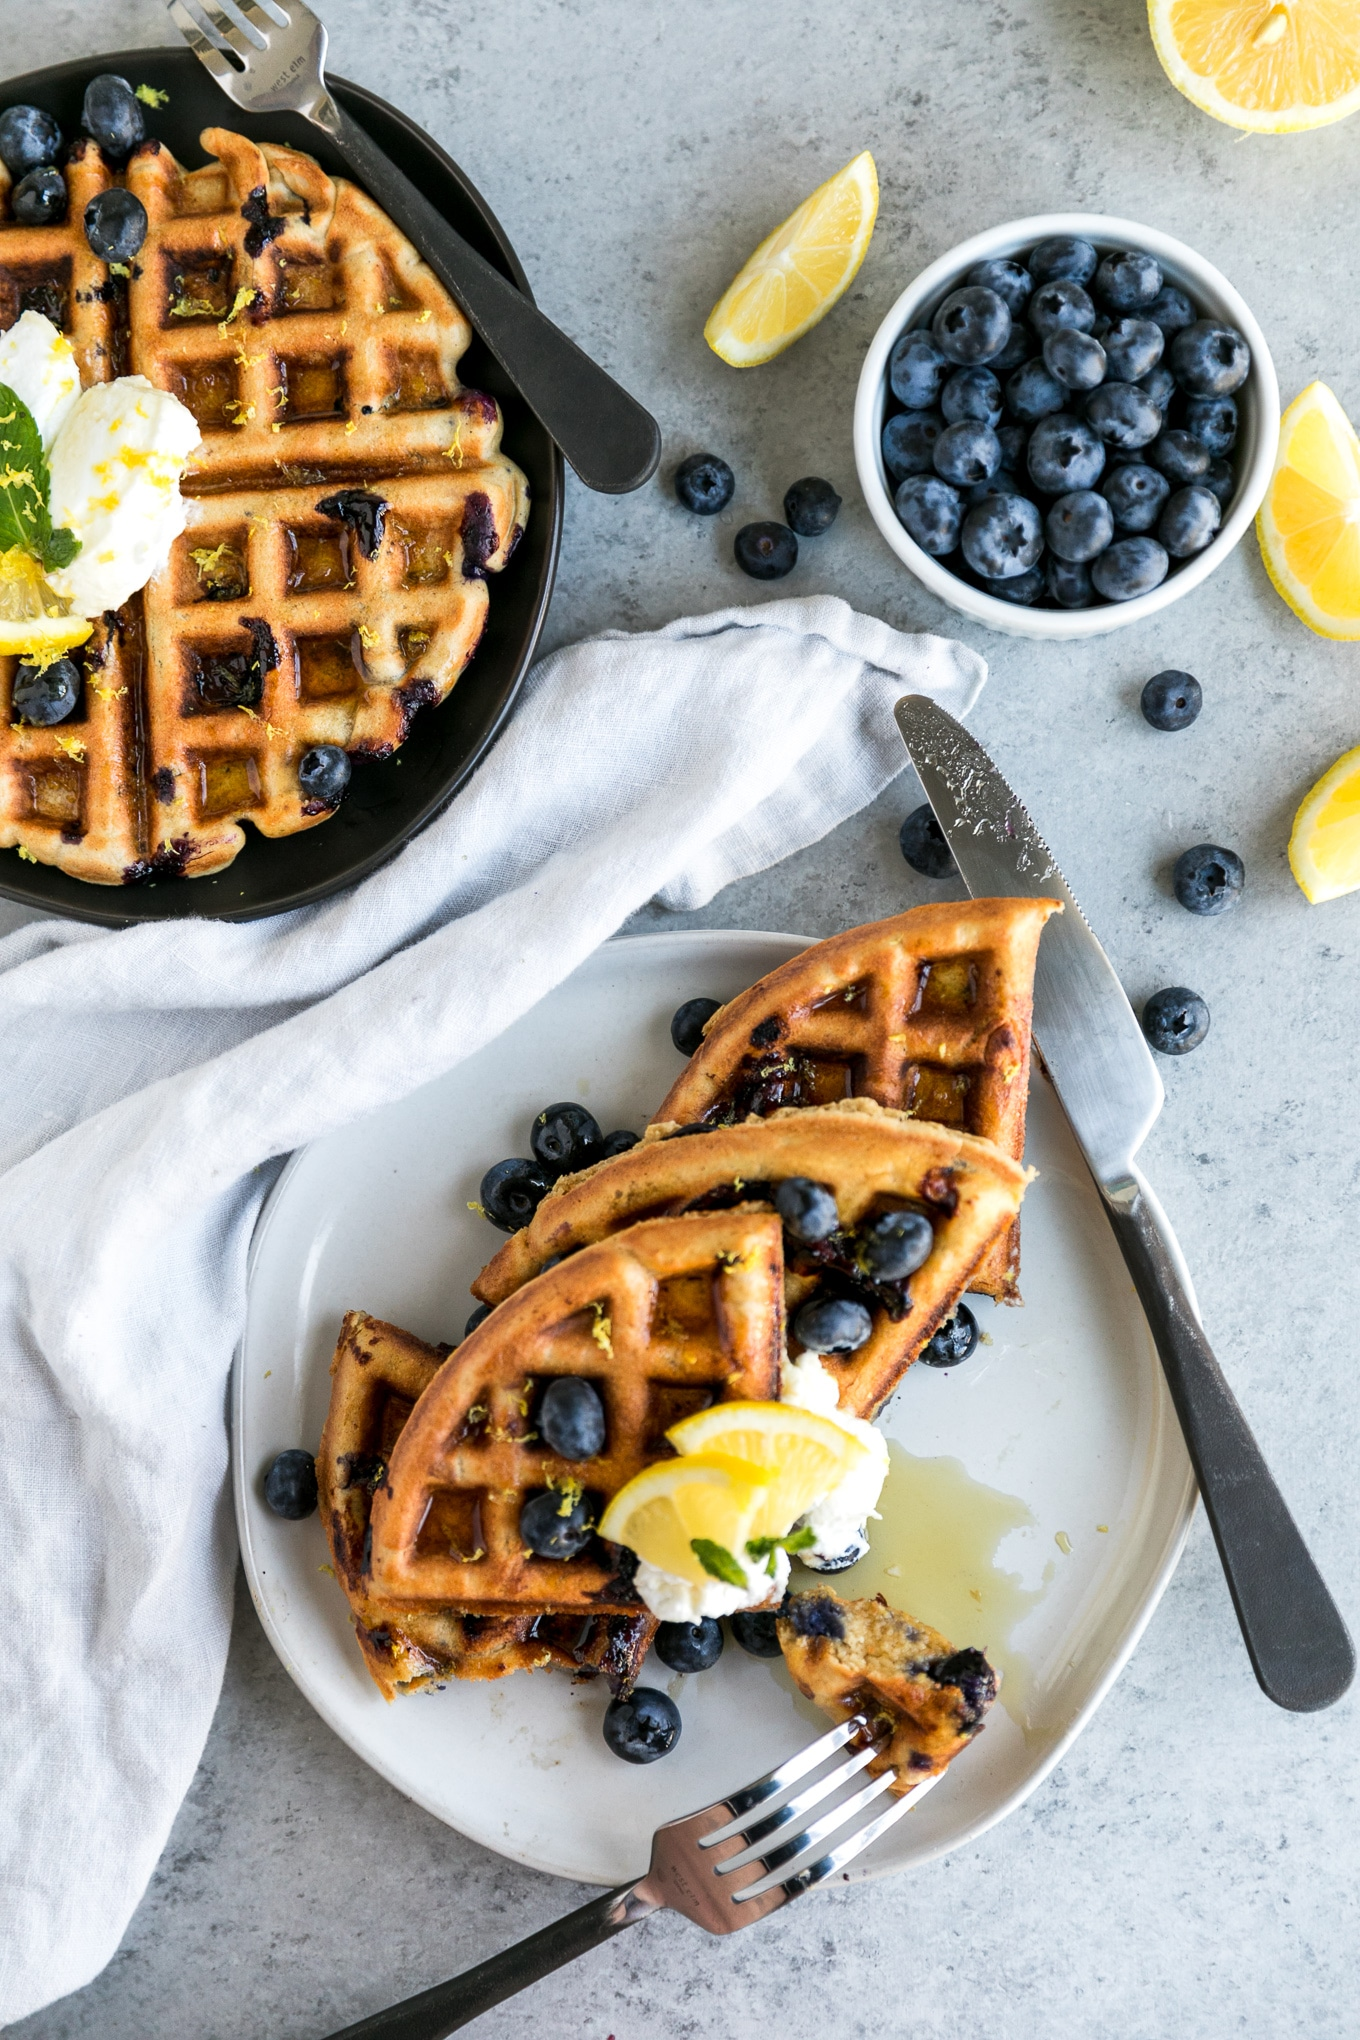 Overhead shot of two plates of waffles topped with blueberries, lemon slices, and a dollop of Greek yogurt